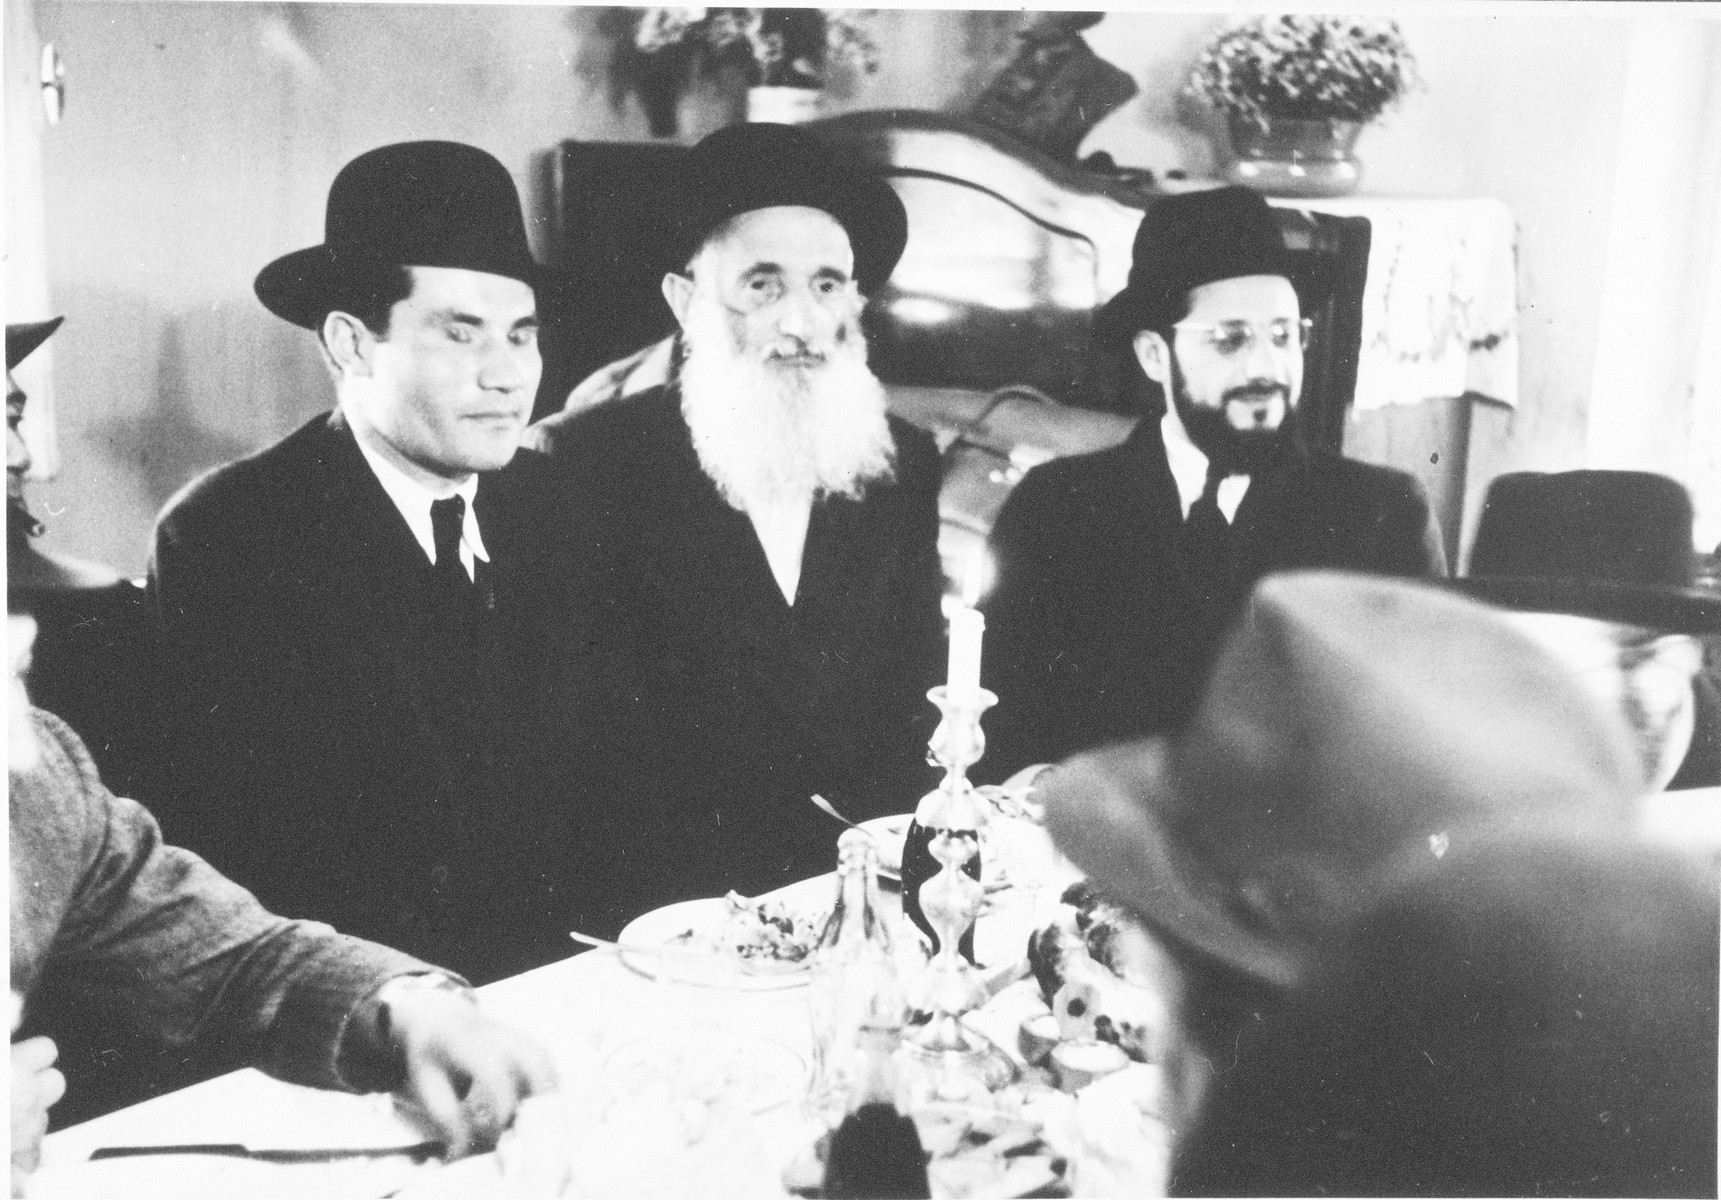 A group of Orthodox men gather around a festive table with candles in what [is probably the Zeilsheim displaced persons' camp].